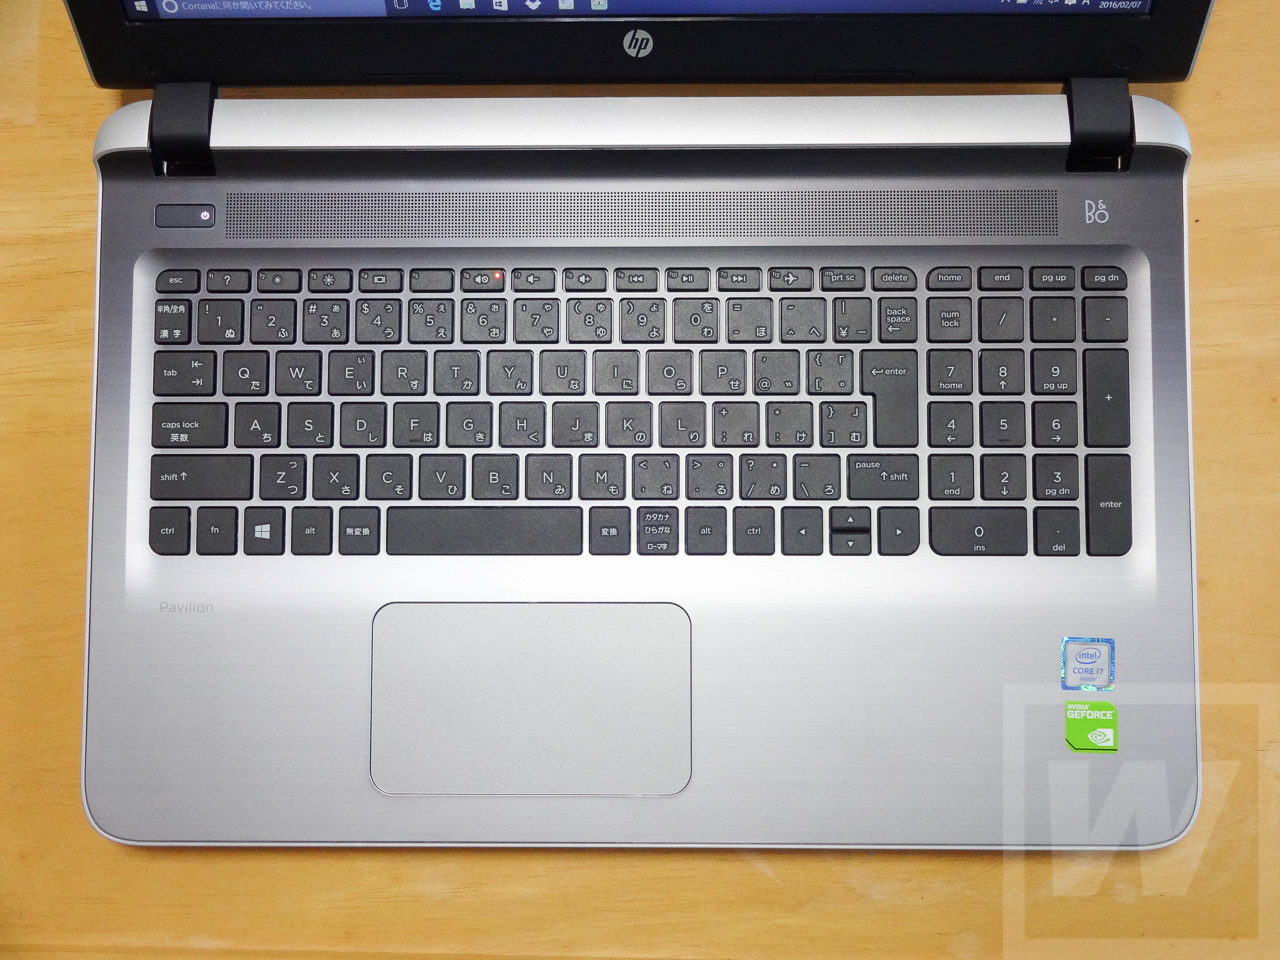 HP Pavilion 15-ab200 Review 003